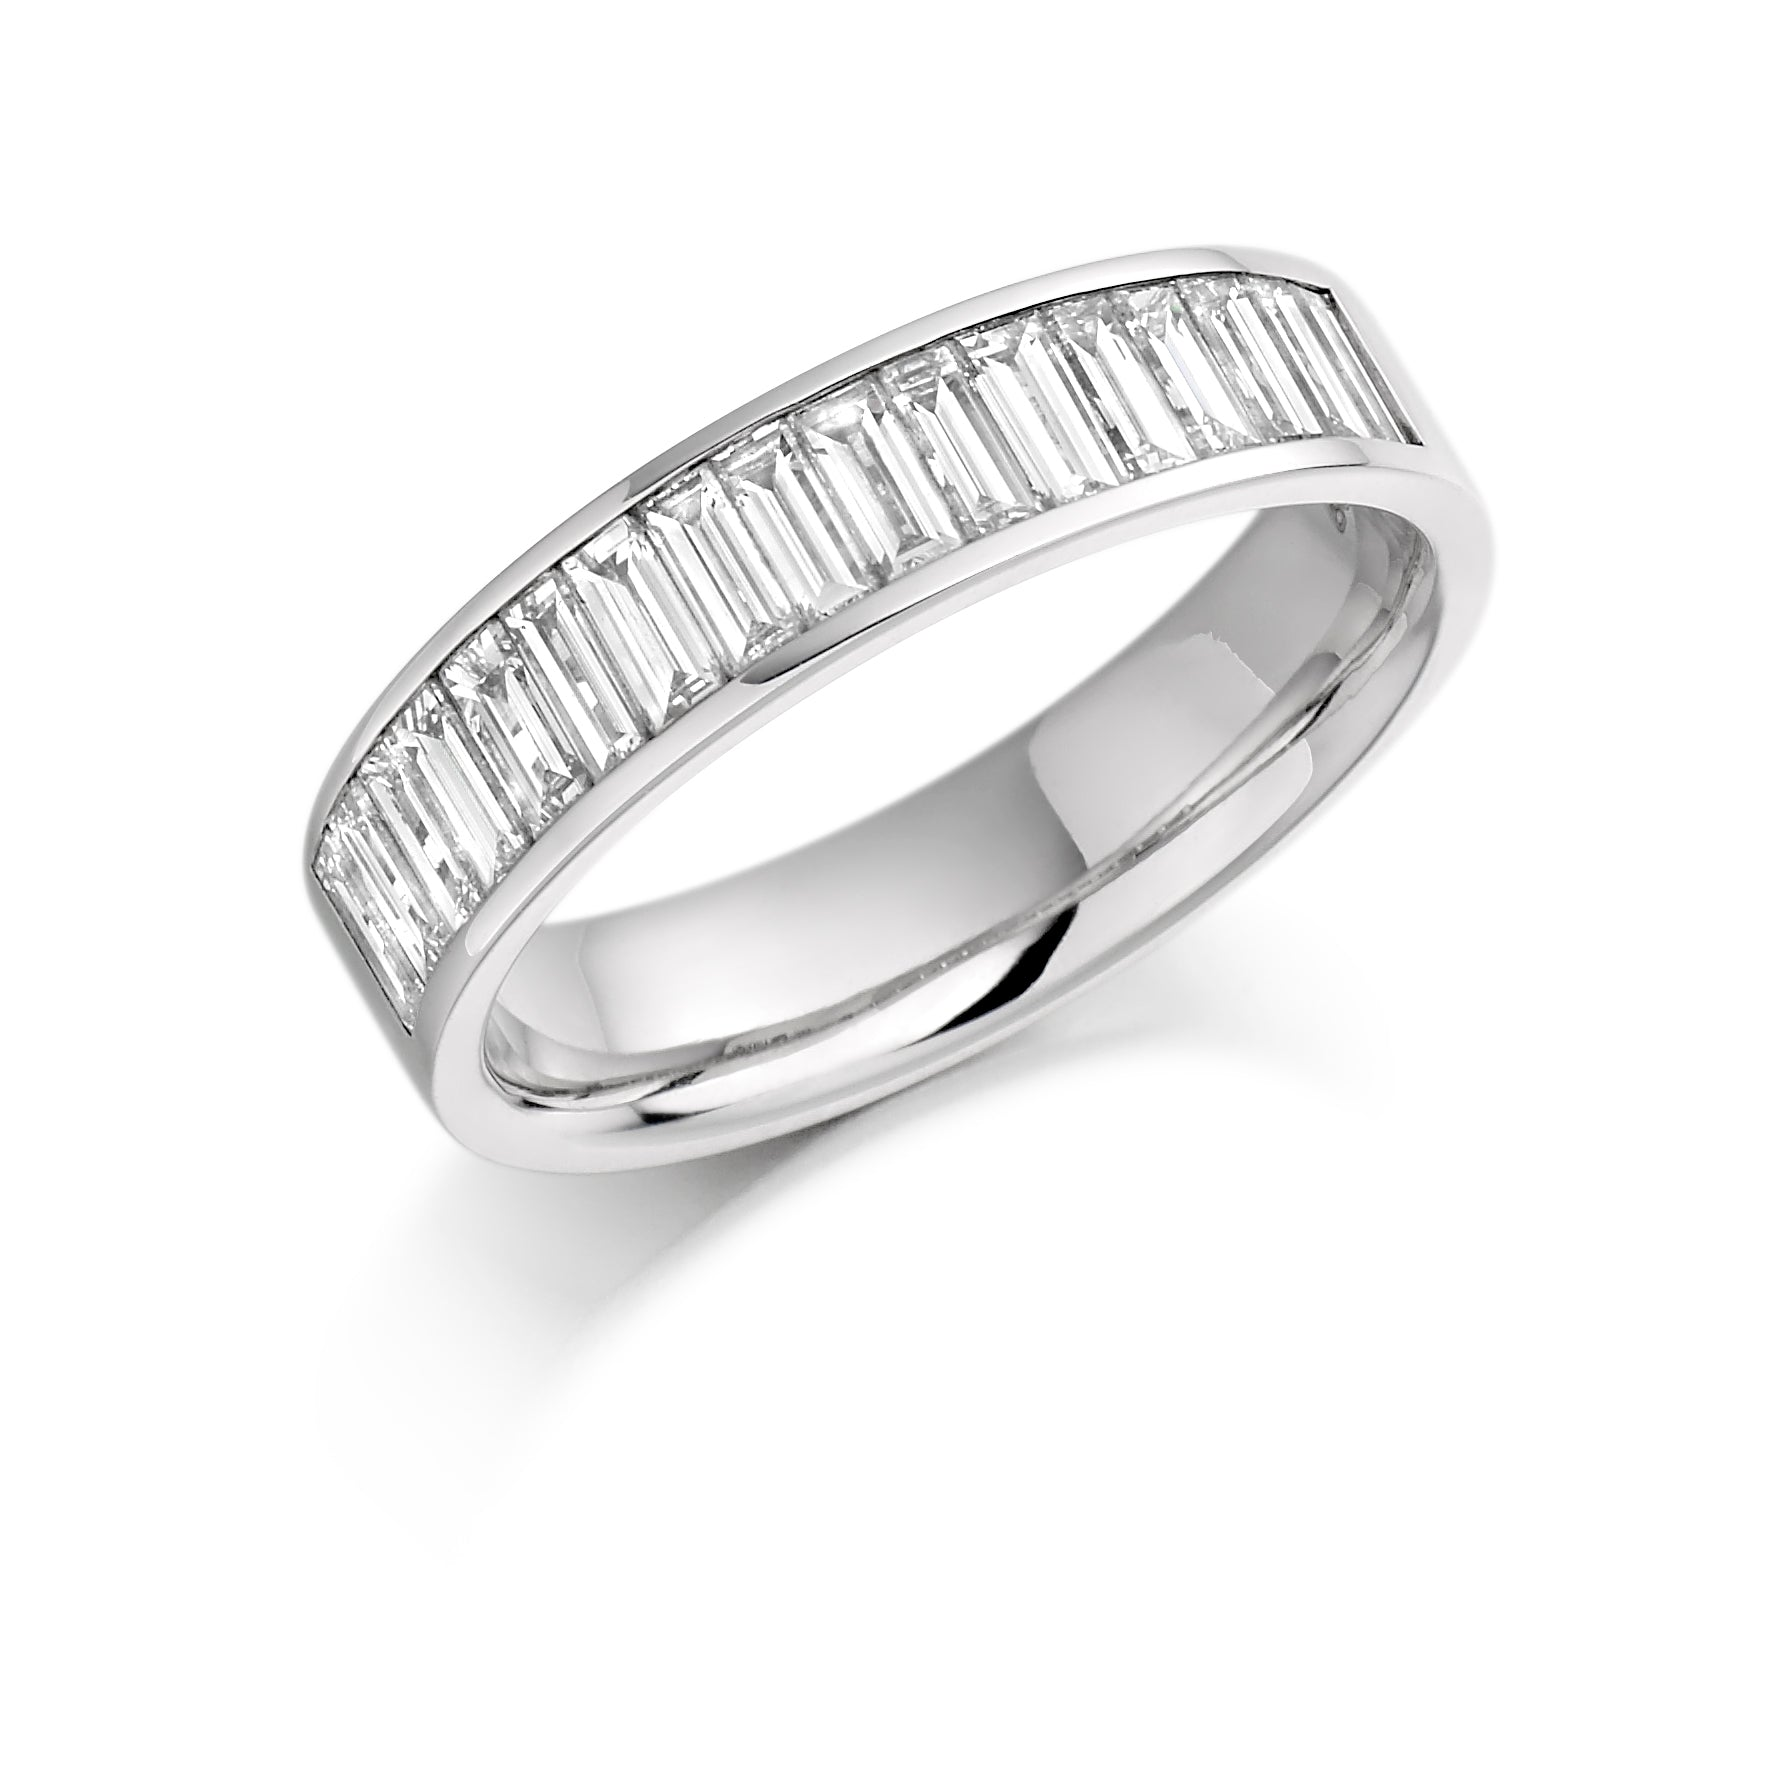 1ct Baguette Cut Diamond Channel Set Eternity Ring - (Home Try-On)